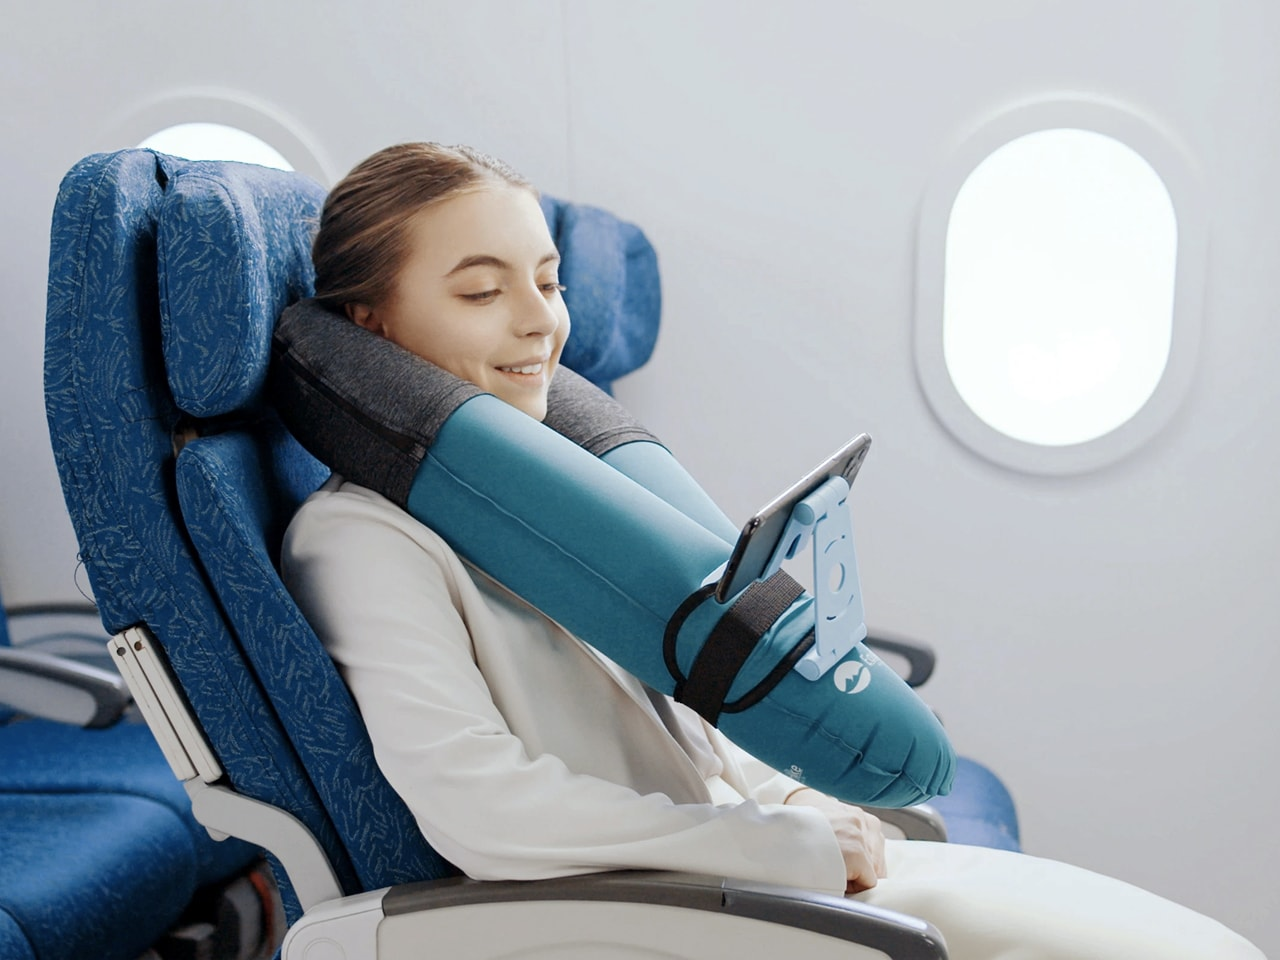 The multifunctional design allows you to set up a mobile phone stand on your travel pillow in mere seconds. Sit back and relax while your favorite pillow takes care of entertainment during your trip.